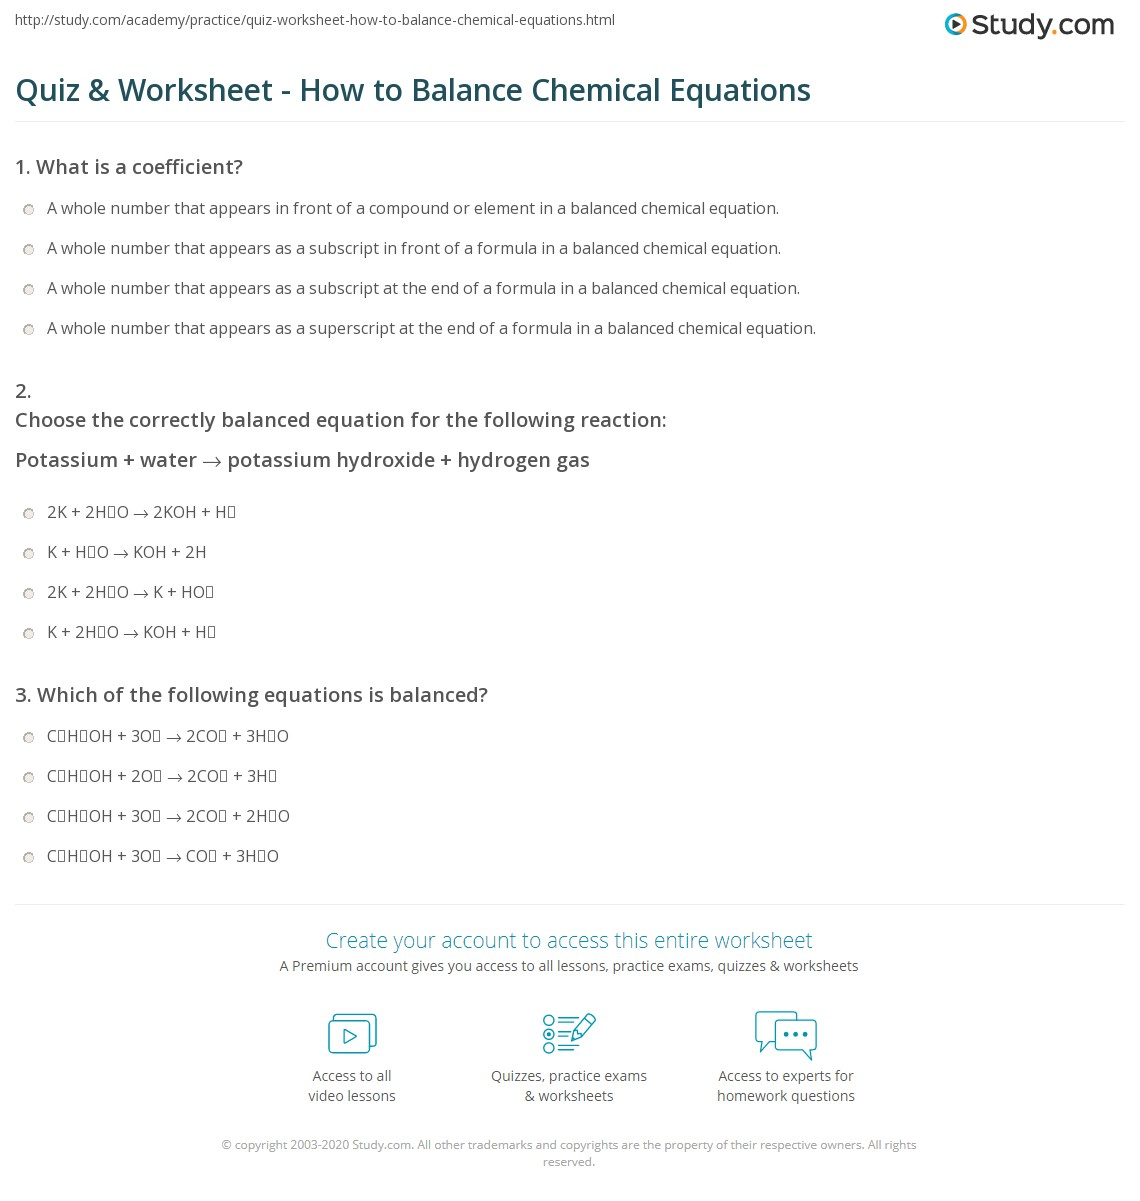 complete overview of year 11 chemistry essay Lab report - flame test related international baccalaureate chemistry essays acid base lab report moles of hcl initial - moles of hcl + 101 = 10011 4 % moles = 3555/ 10011 = 00354 3 % the enthalpy change is required to be calculated.